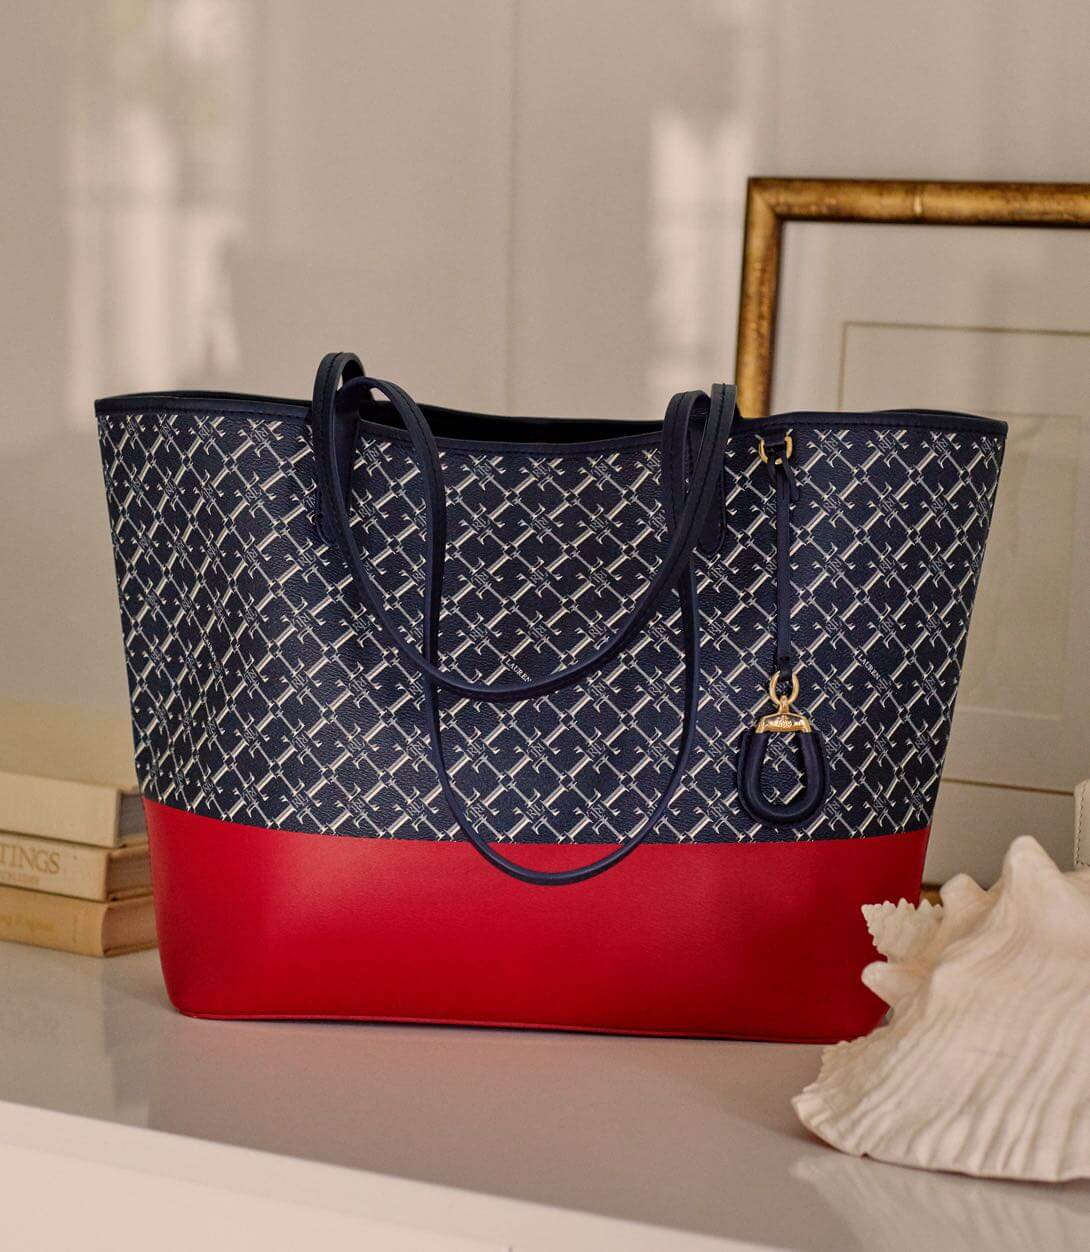 Navy print tote with red accents.